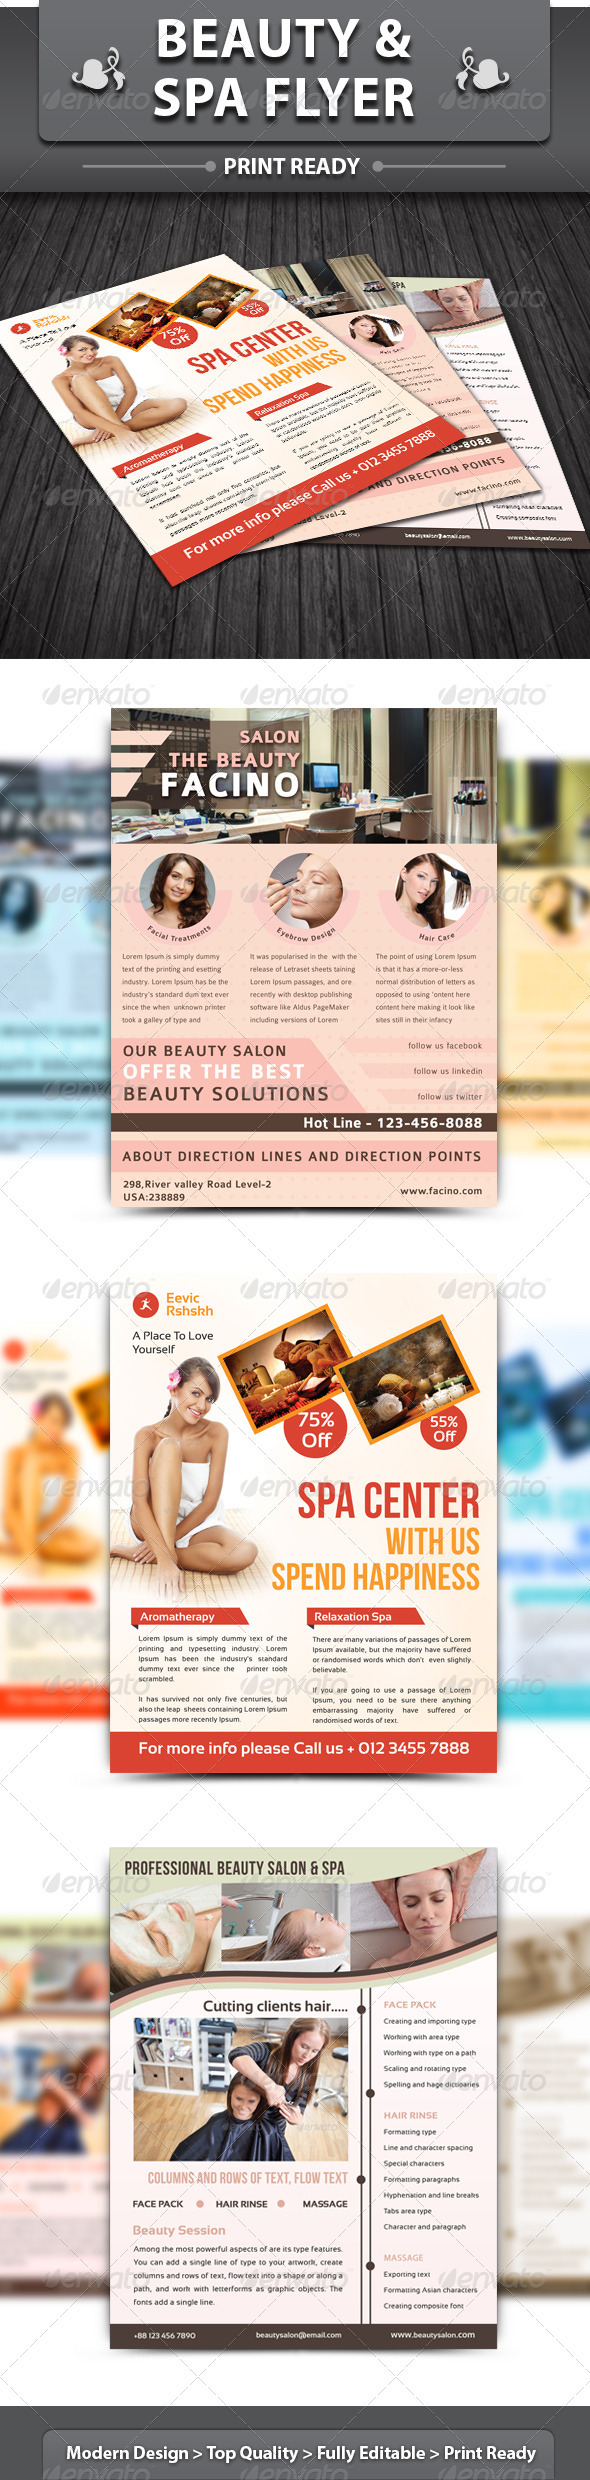 Beauty & Spa Flyer - Corporate Flyers